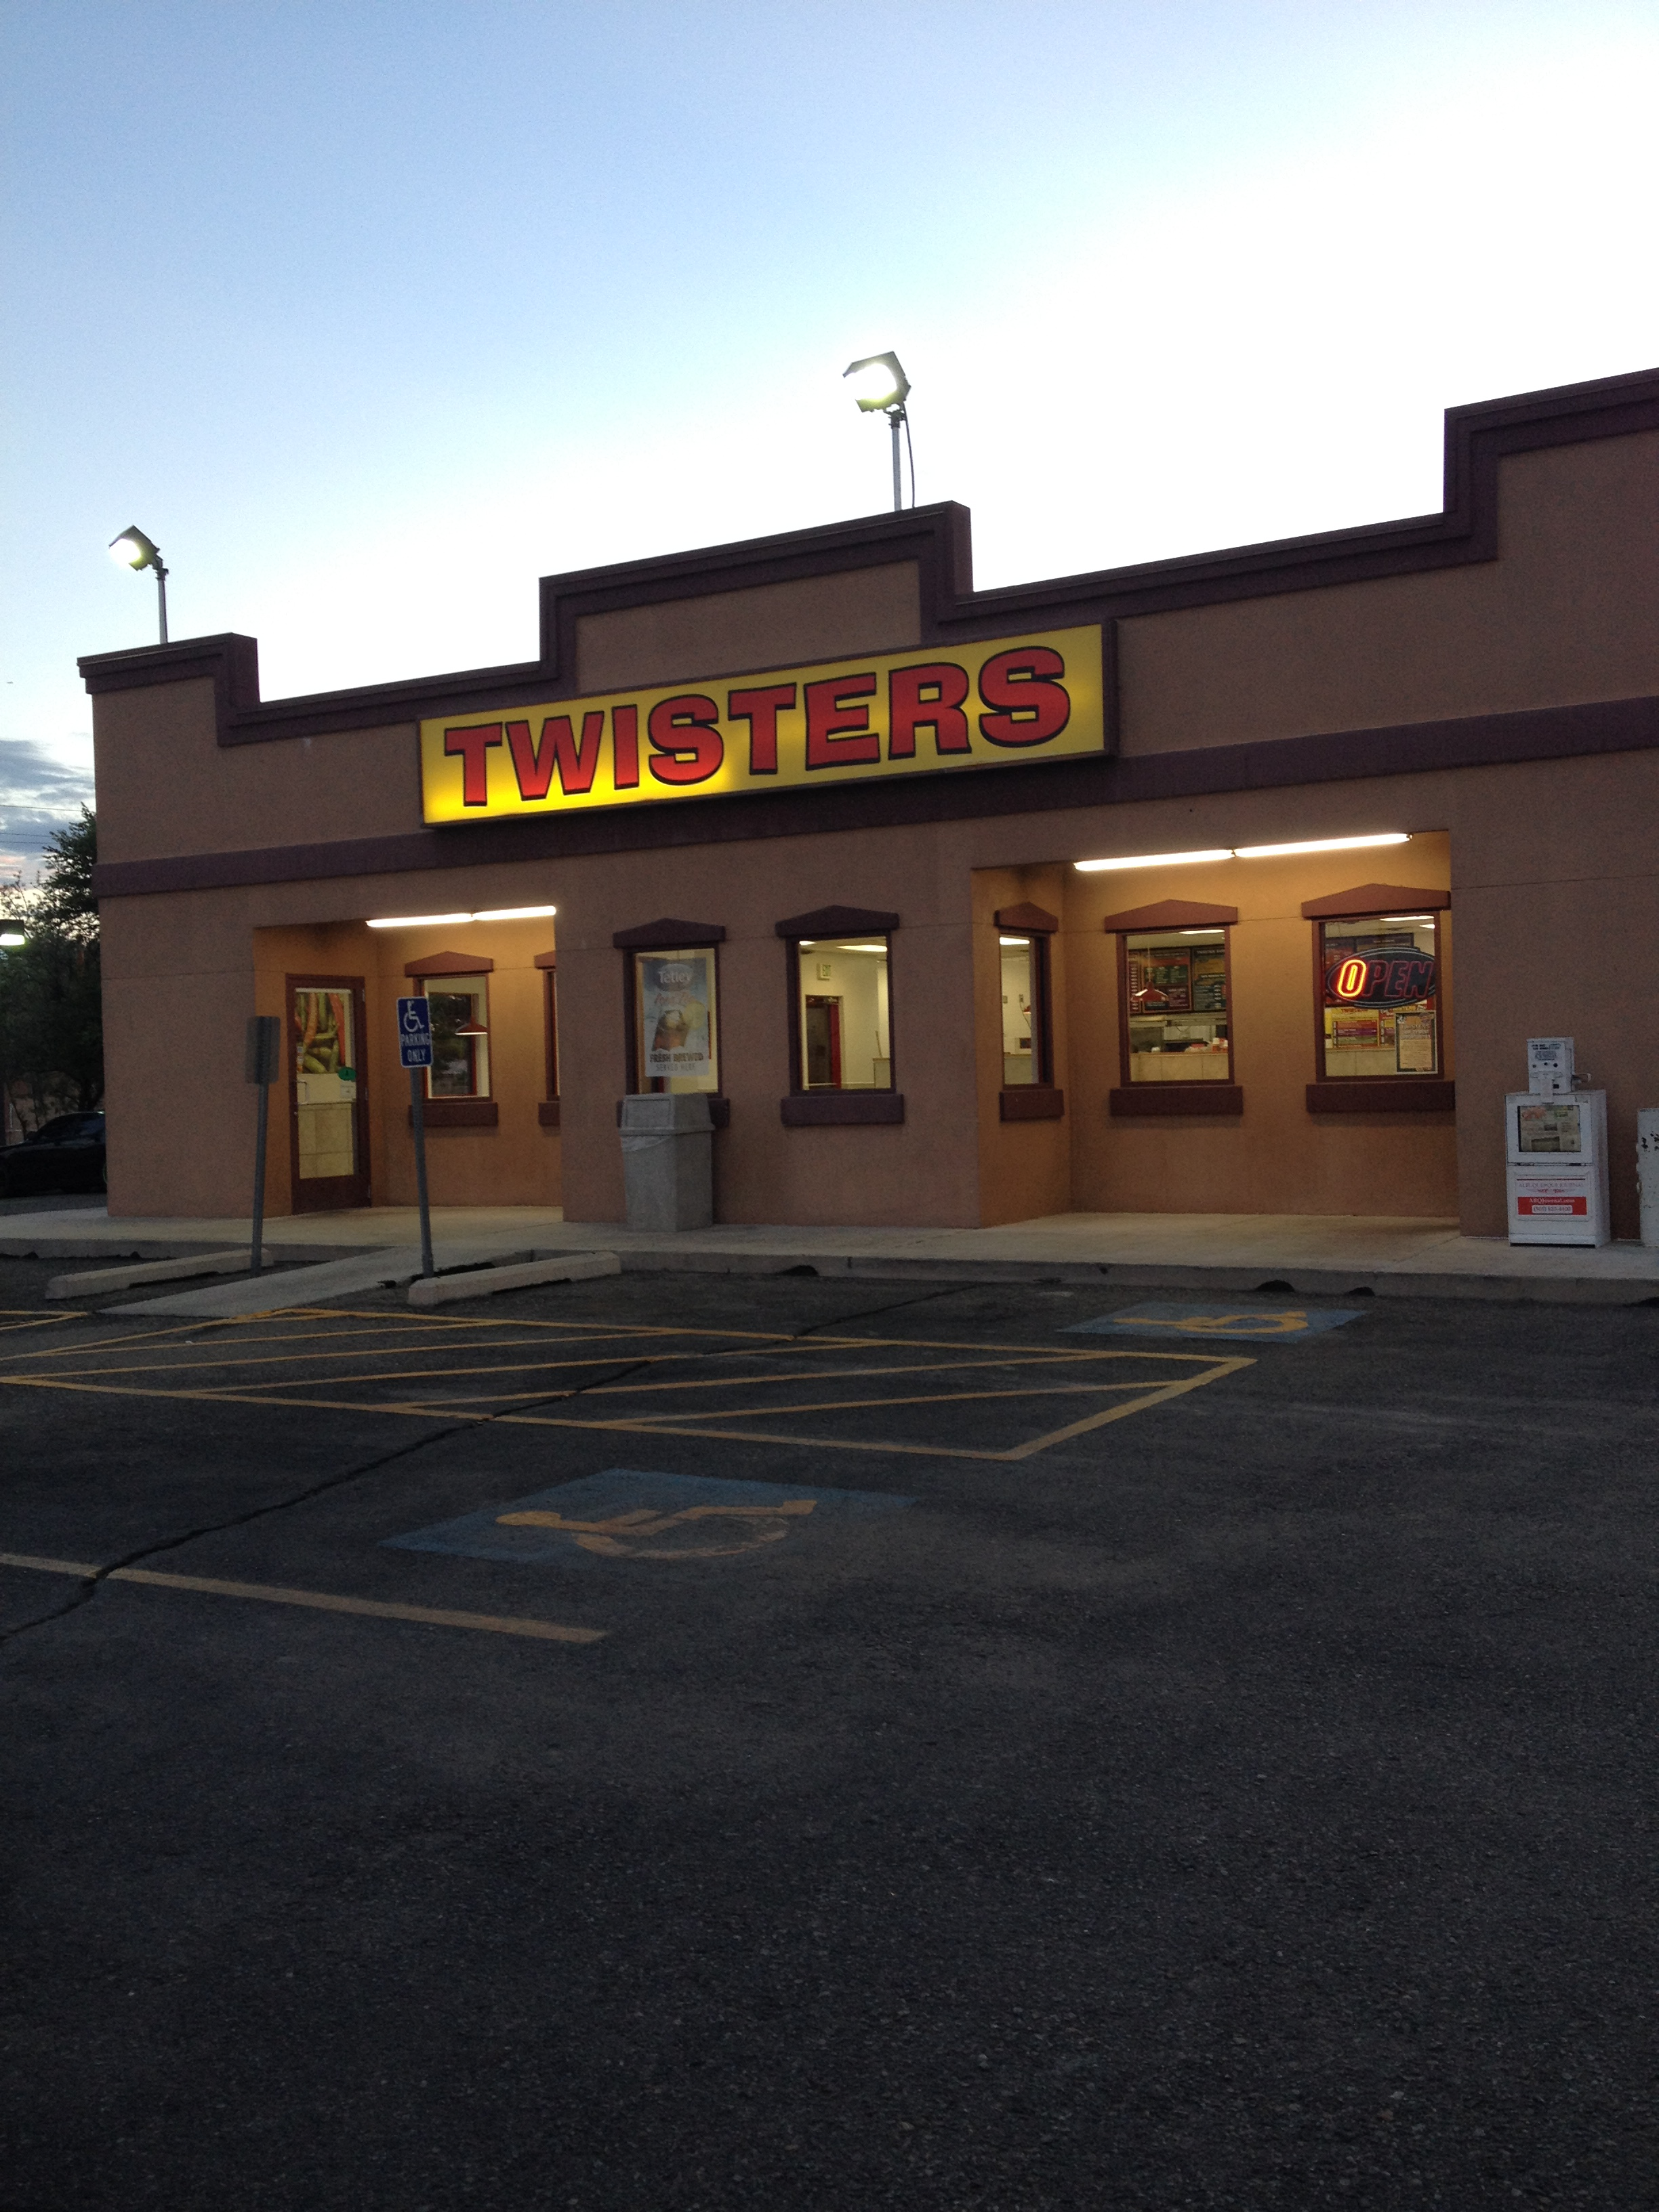 150614 - 051 - Albuquerque - Twister, set Los Pollos Hermanos (Fotoc. iPhone - 8659)